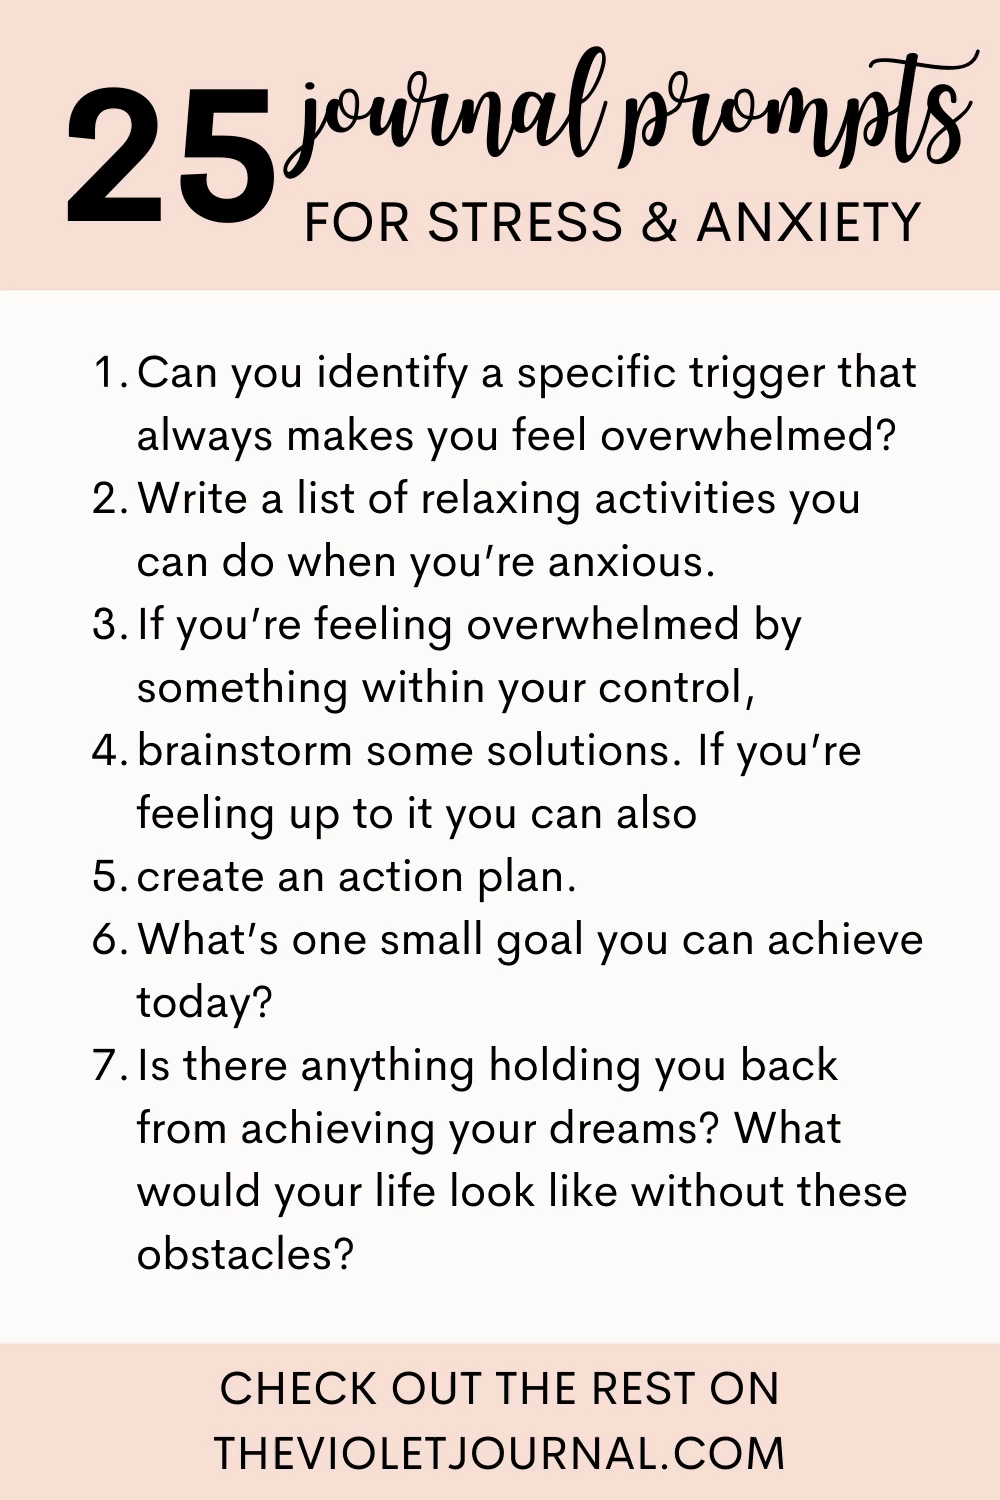 Journal Prompts for Stress and Anxiety